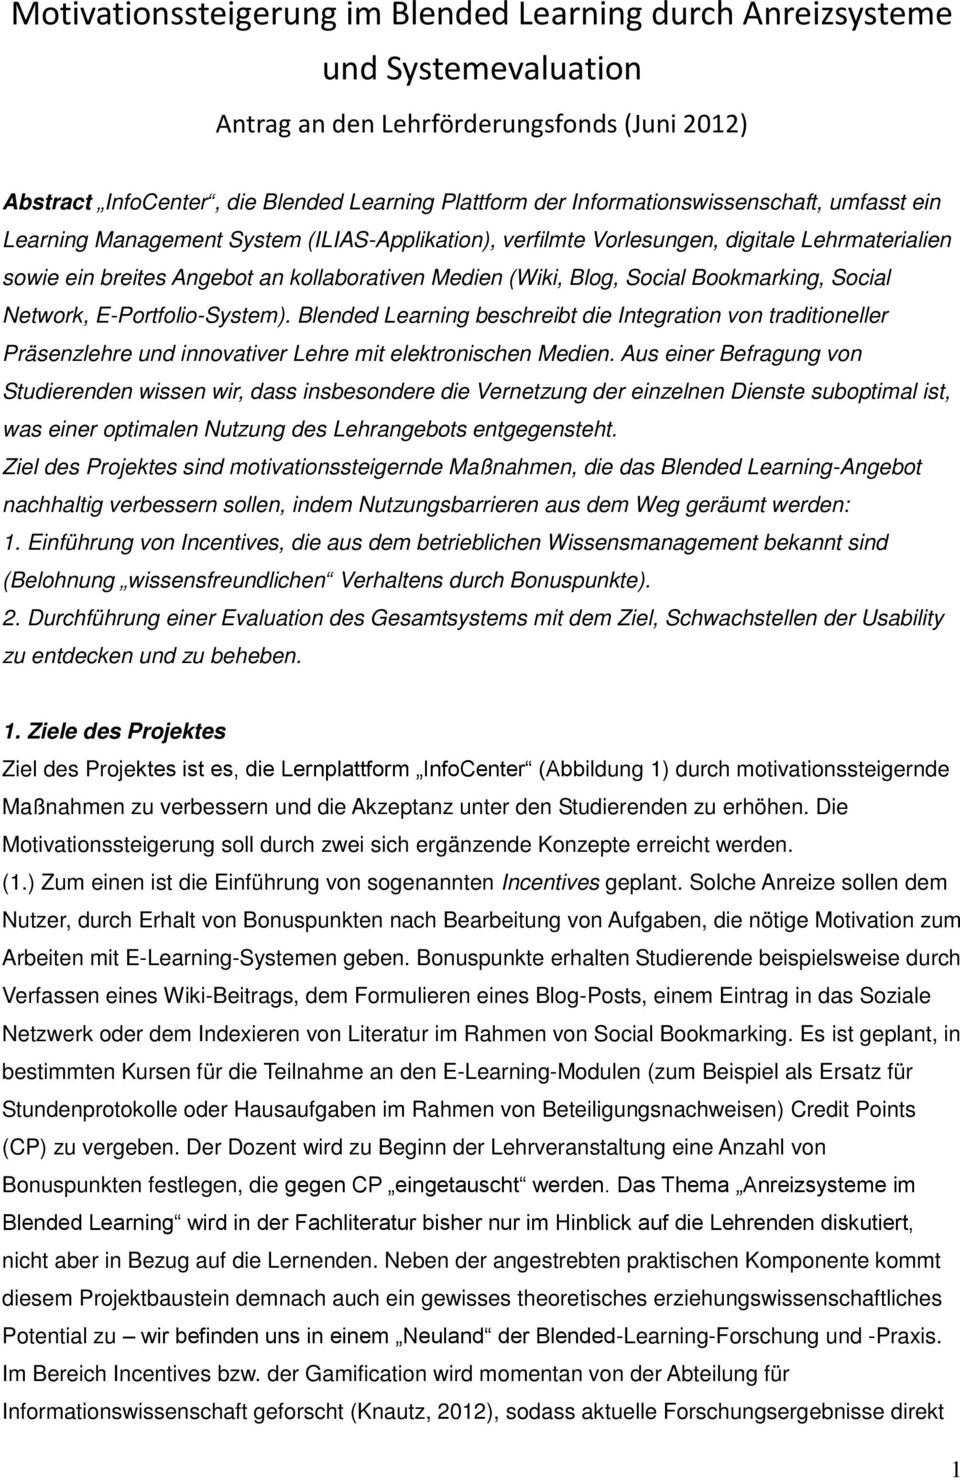 Social Bookmarking, Social Network, E-Portfolio-System). Blended Learning beschreibt die Integration von traditioneller Präsenzlehre und innovativer Lehre mit elektronischen Medien.